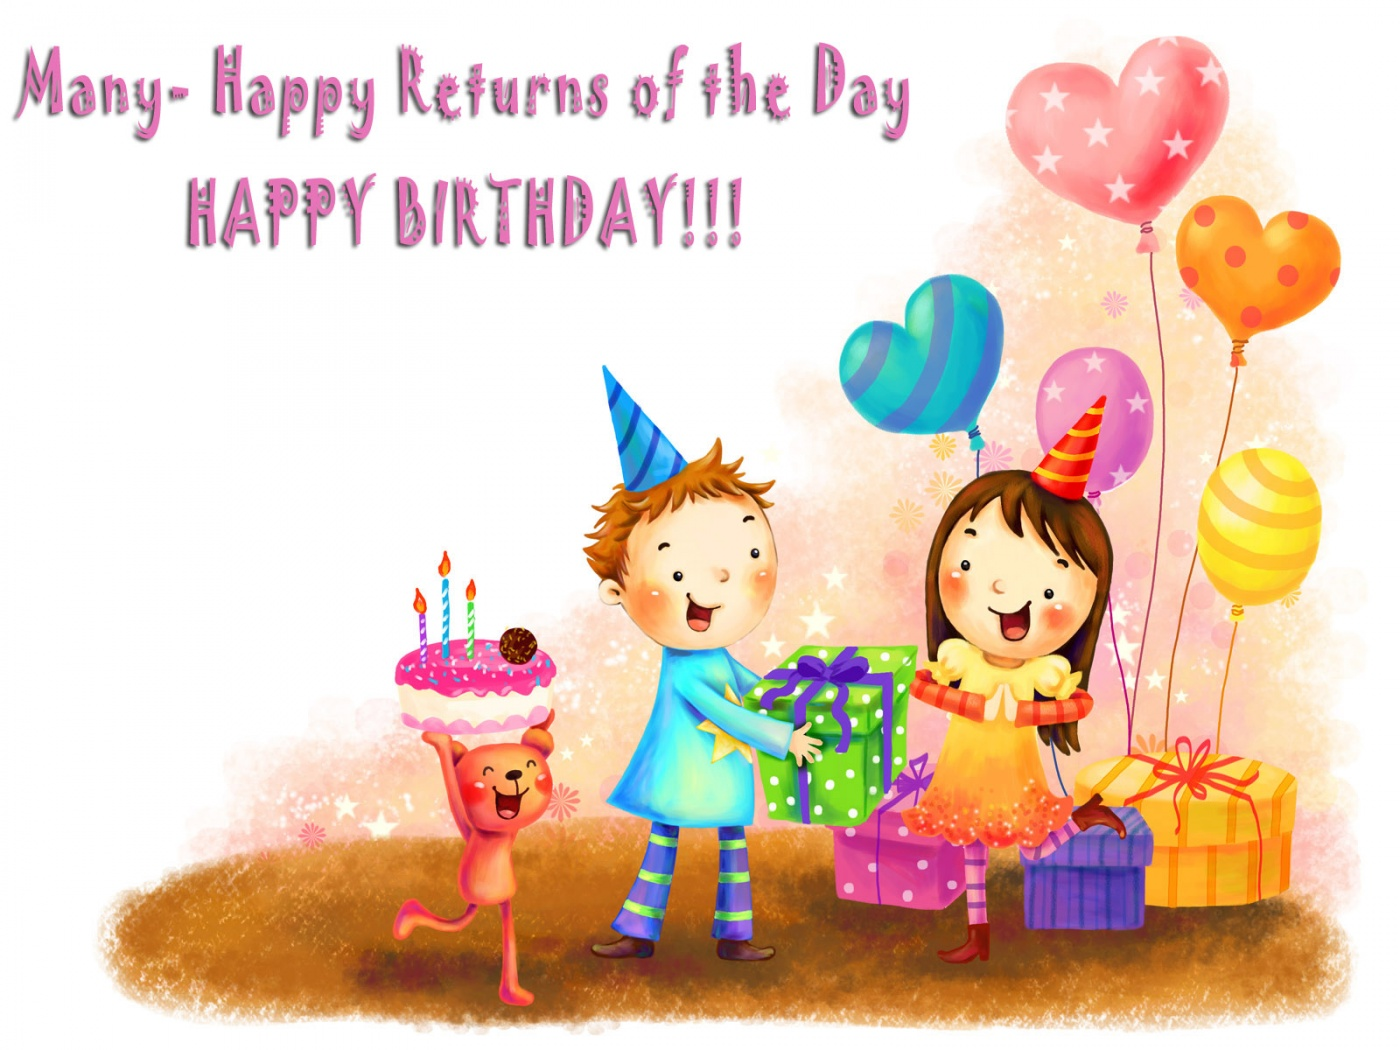 Happy Birthday Images For kids Born in January